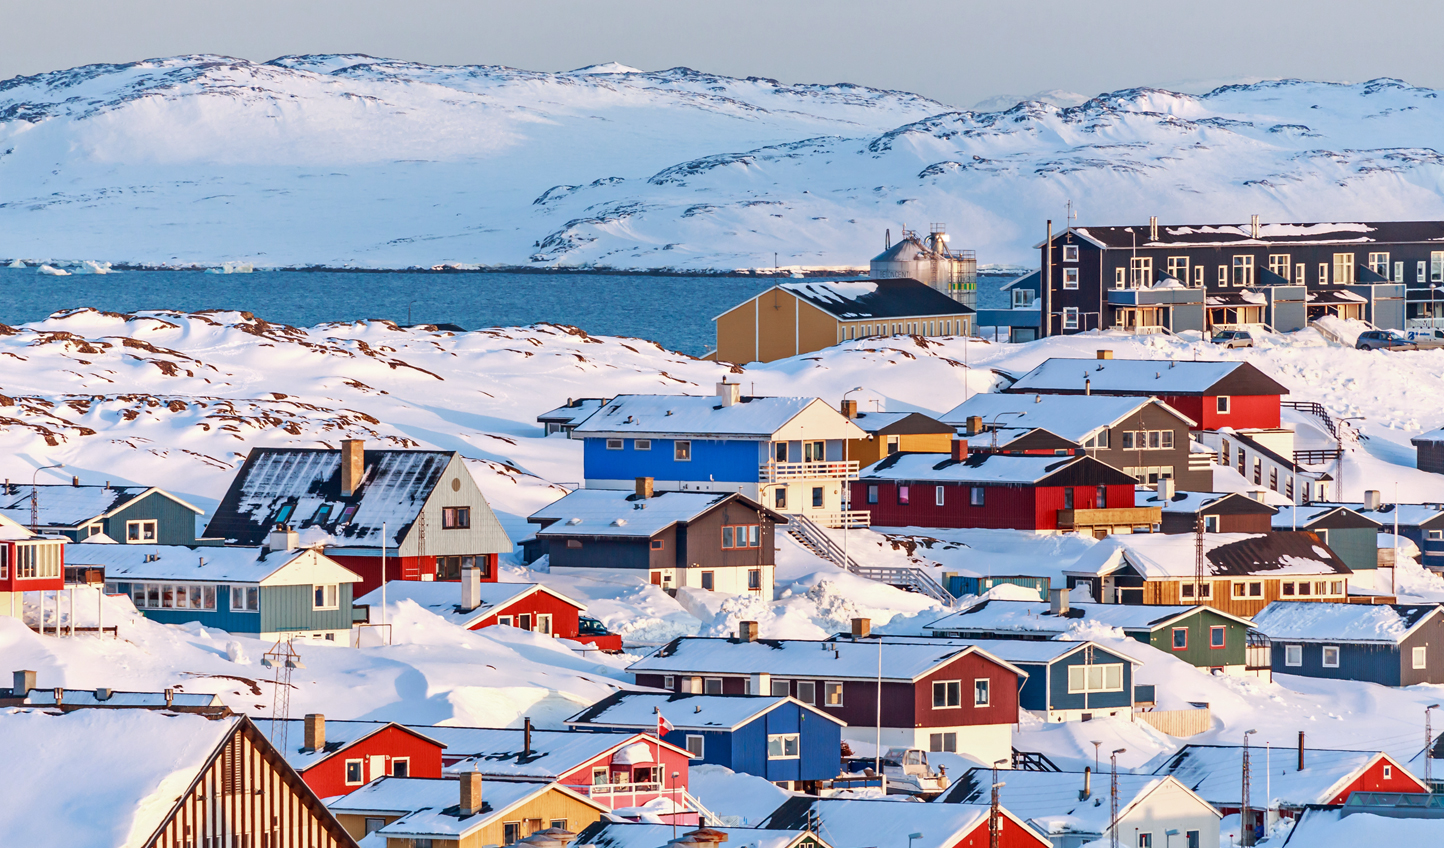 Start your journey in Nuuk, the biggest town in Greenland